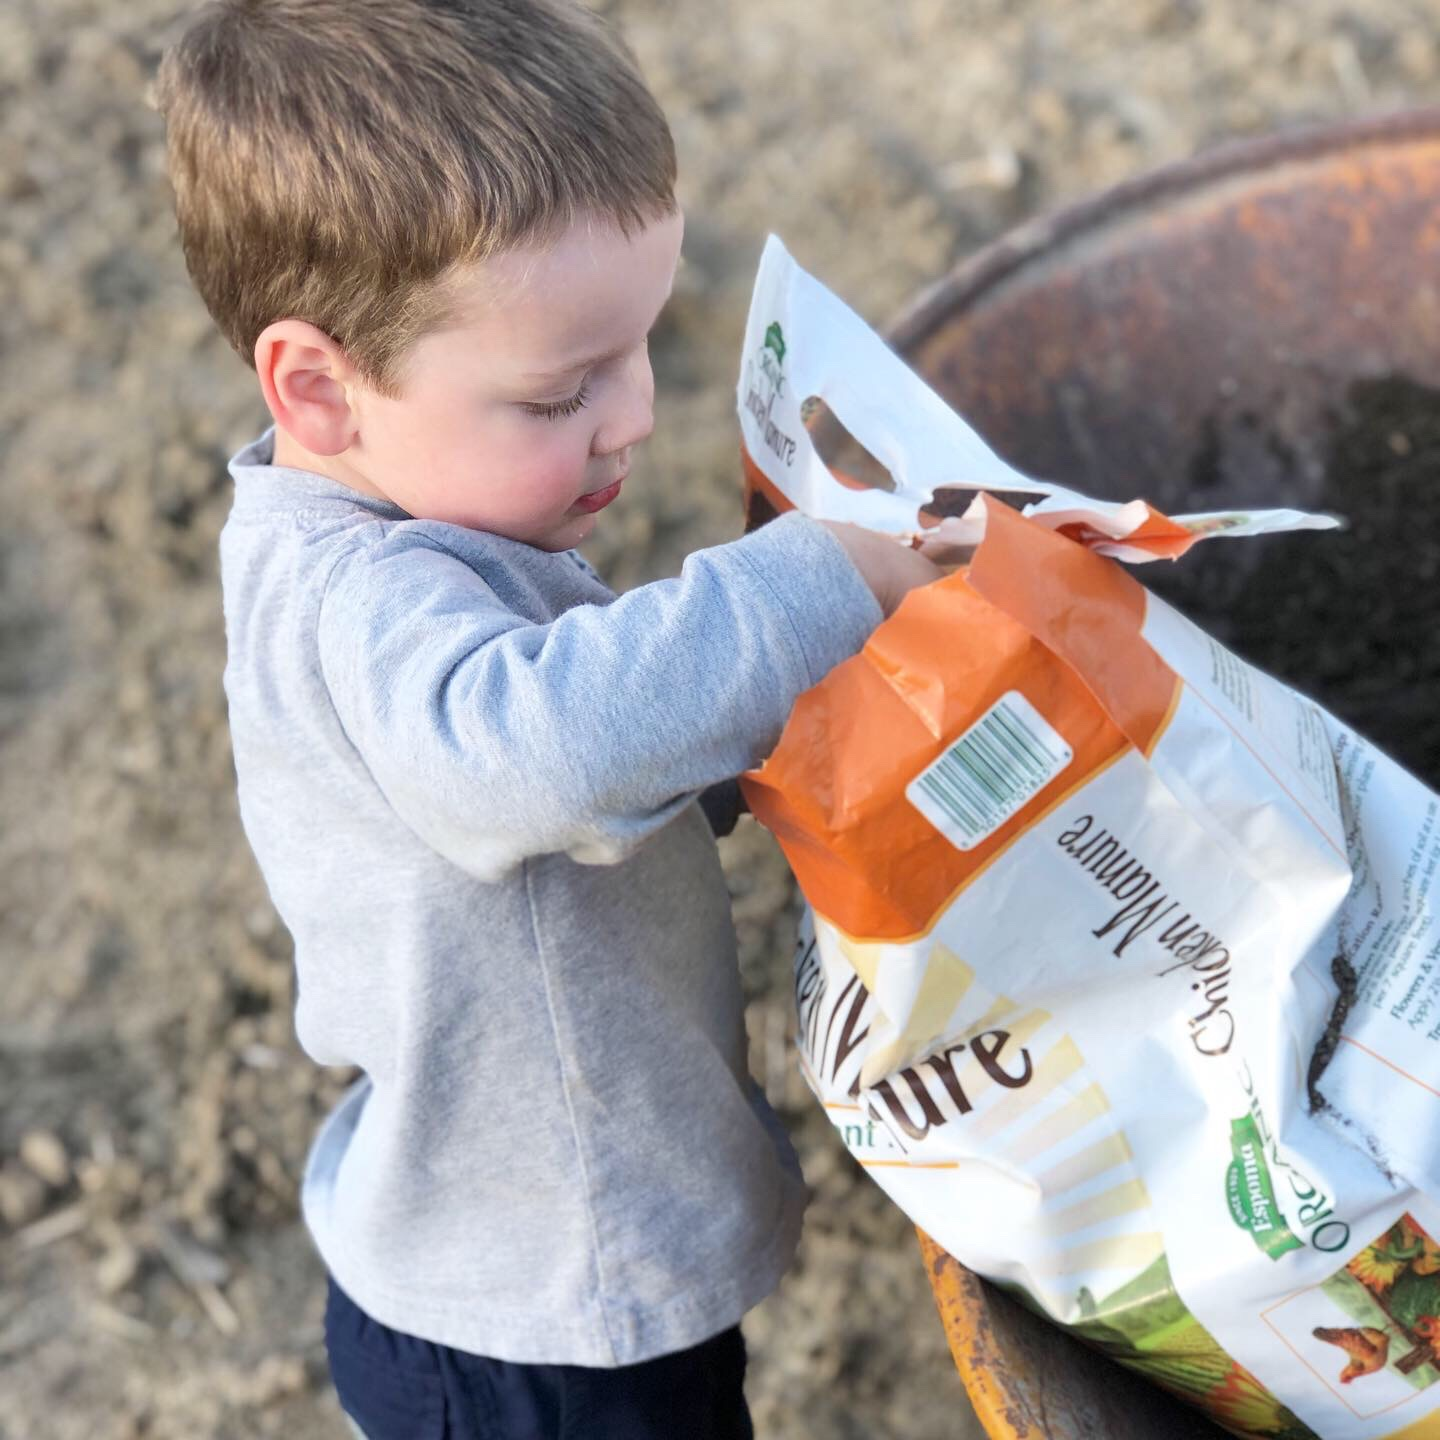 Preschooler helping in the garden | Gardening with kids